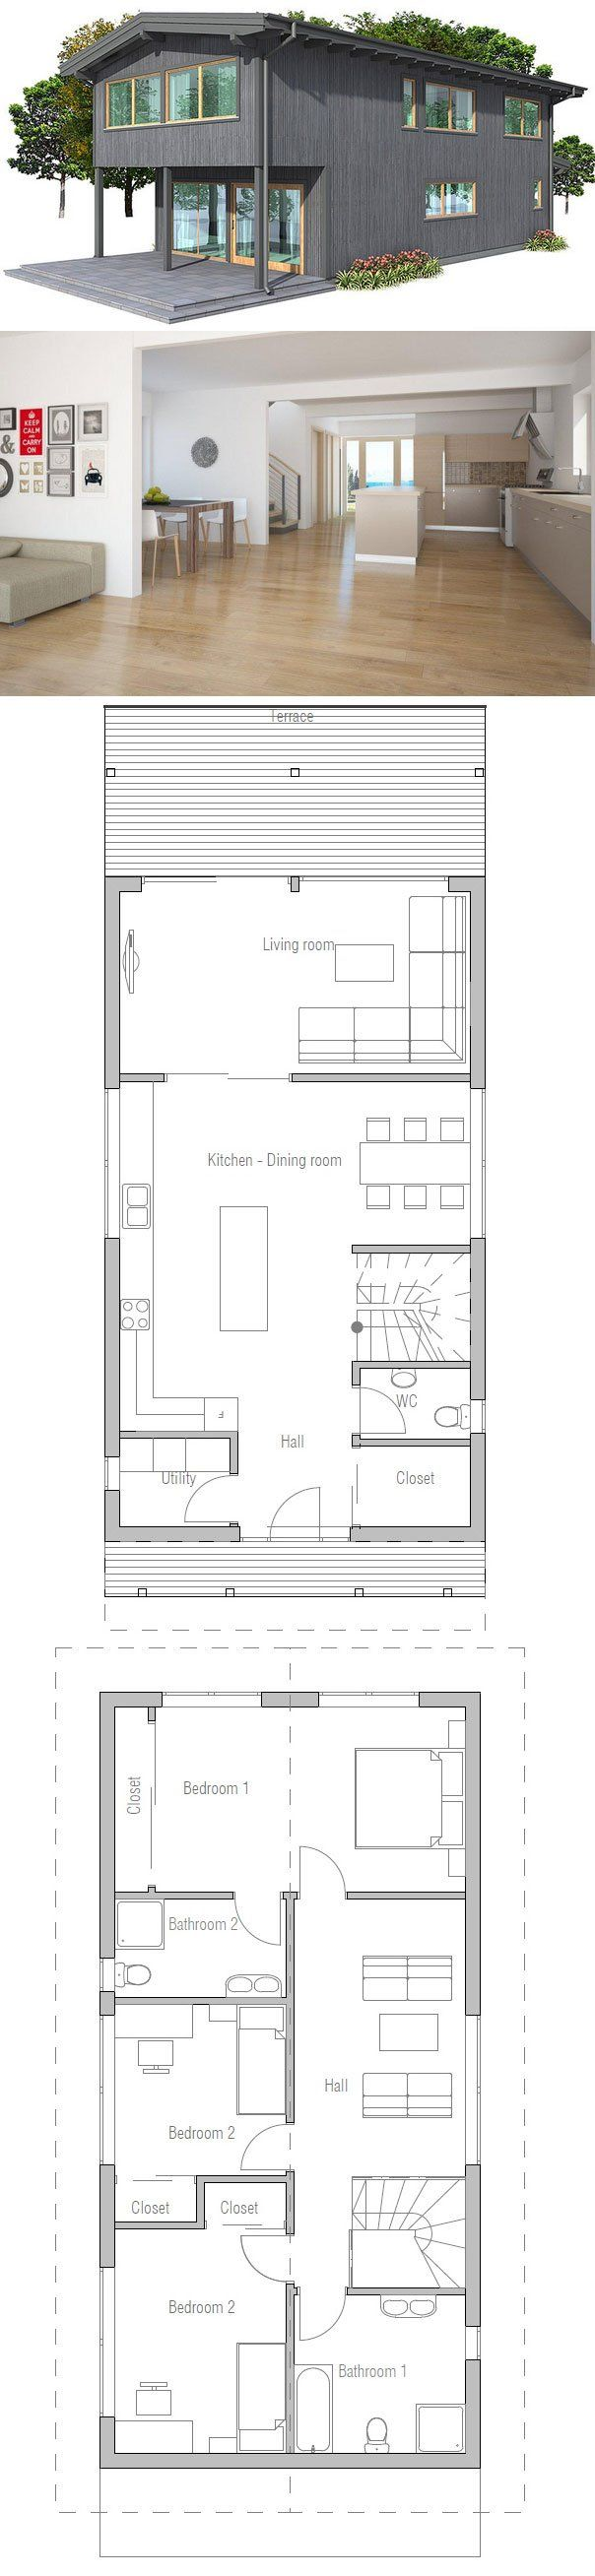 best 25 narrow house plans ideas that you will like on pinterest affordable narrow house to tiny lot floor plan from concepthome com